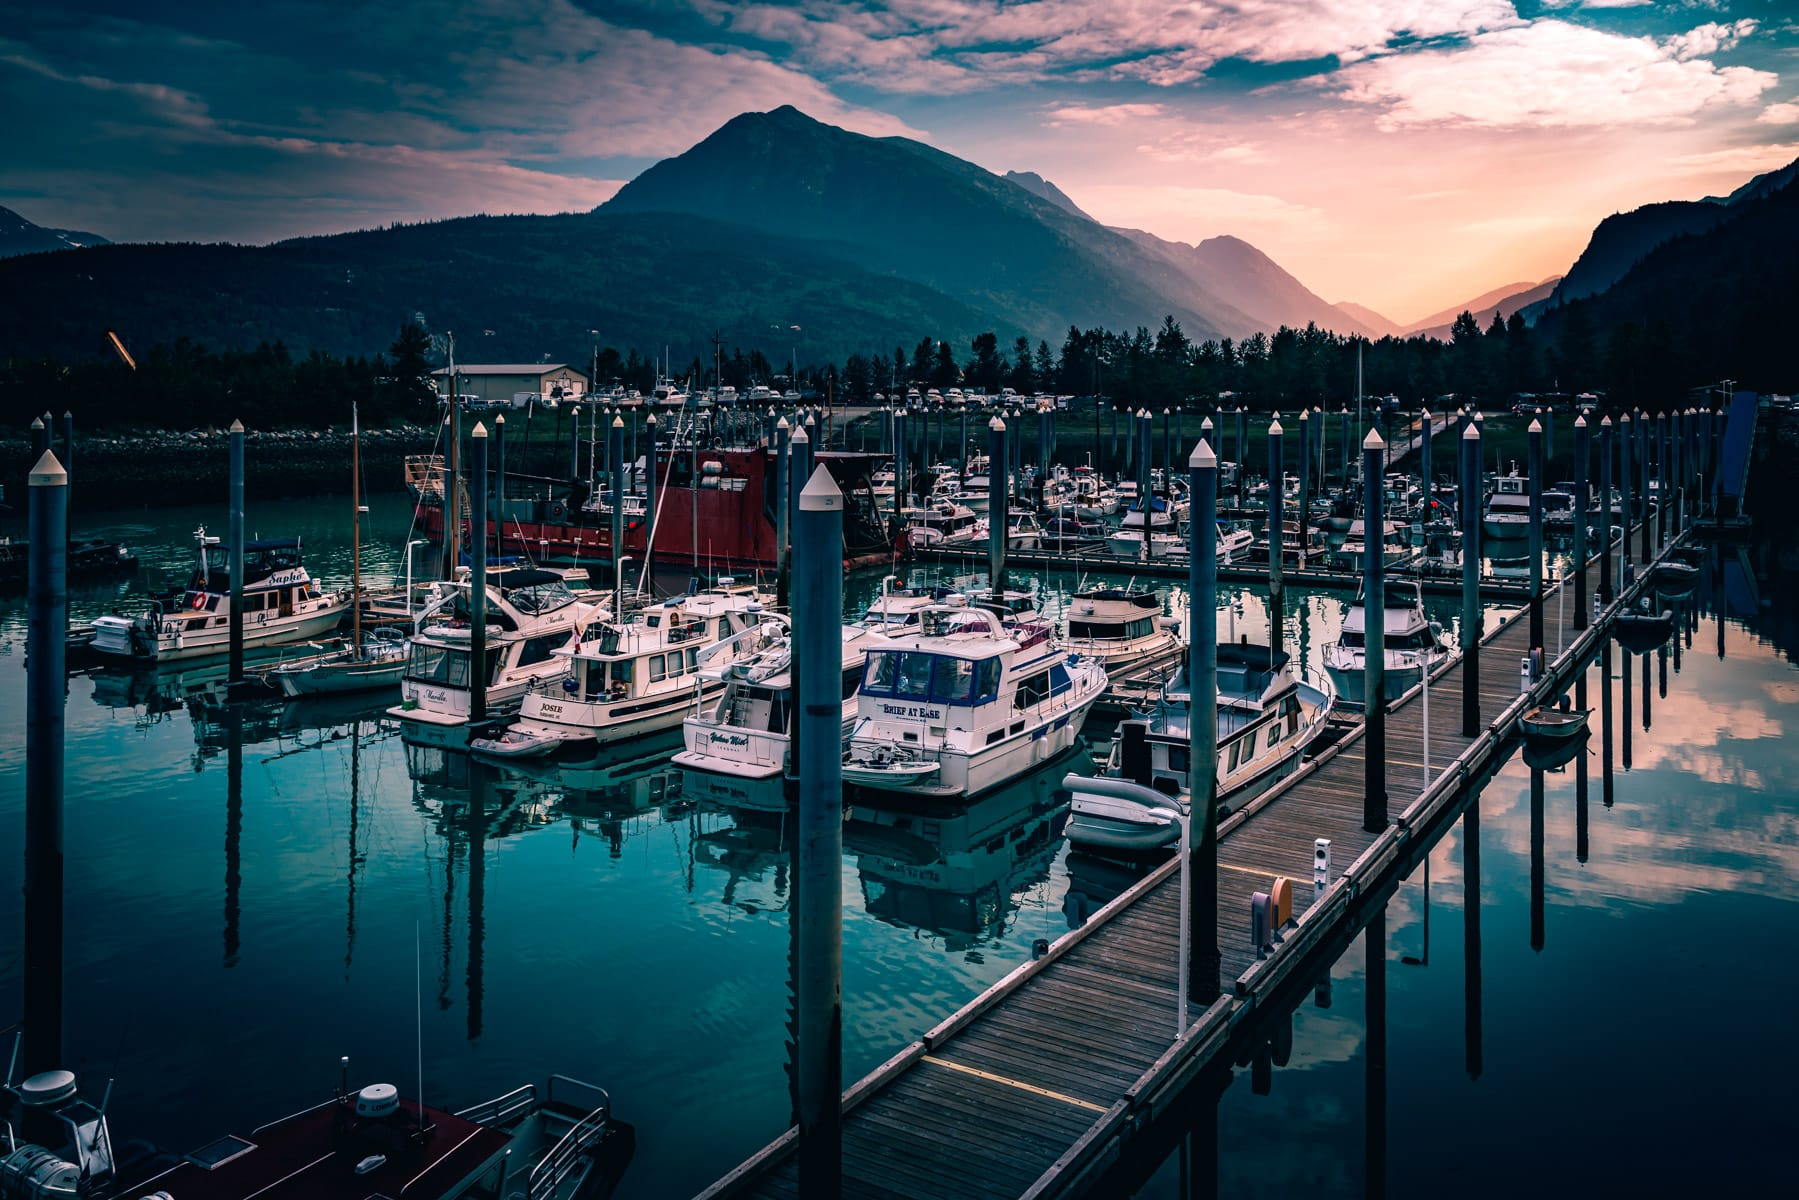 The sun rises on boats in the harbor at Skagway, Alaska.